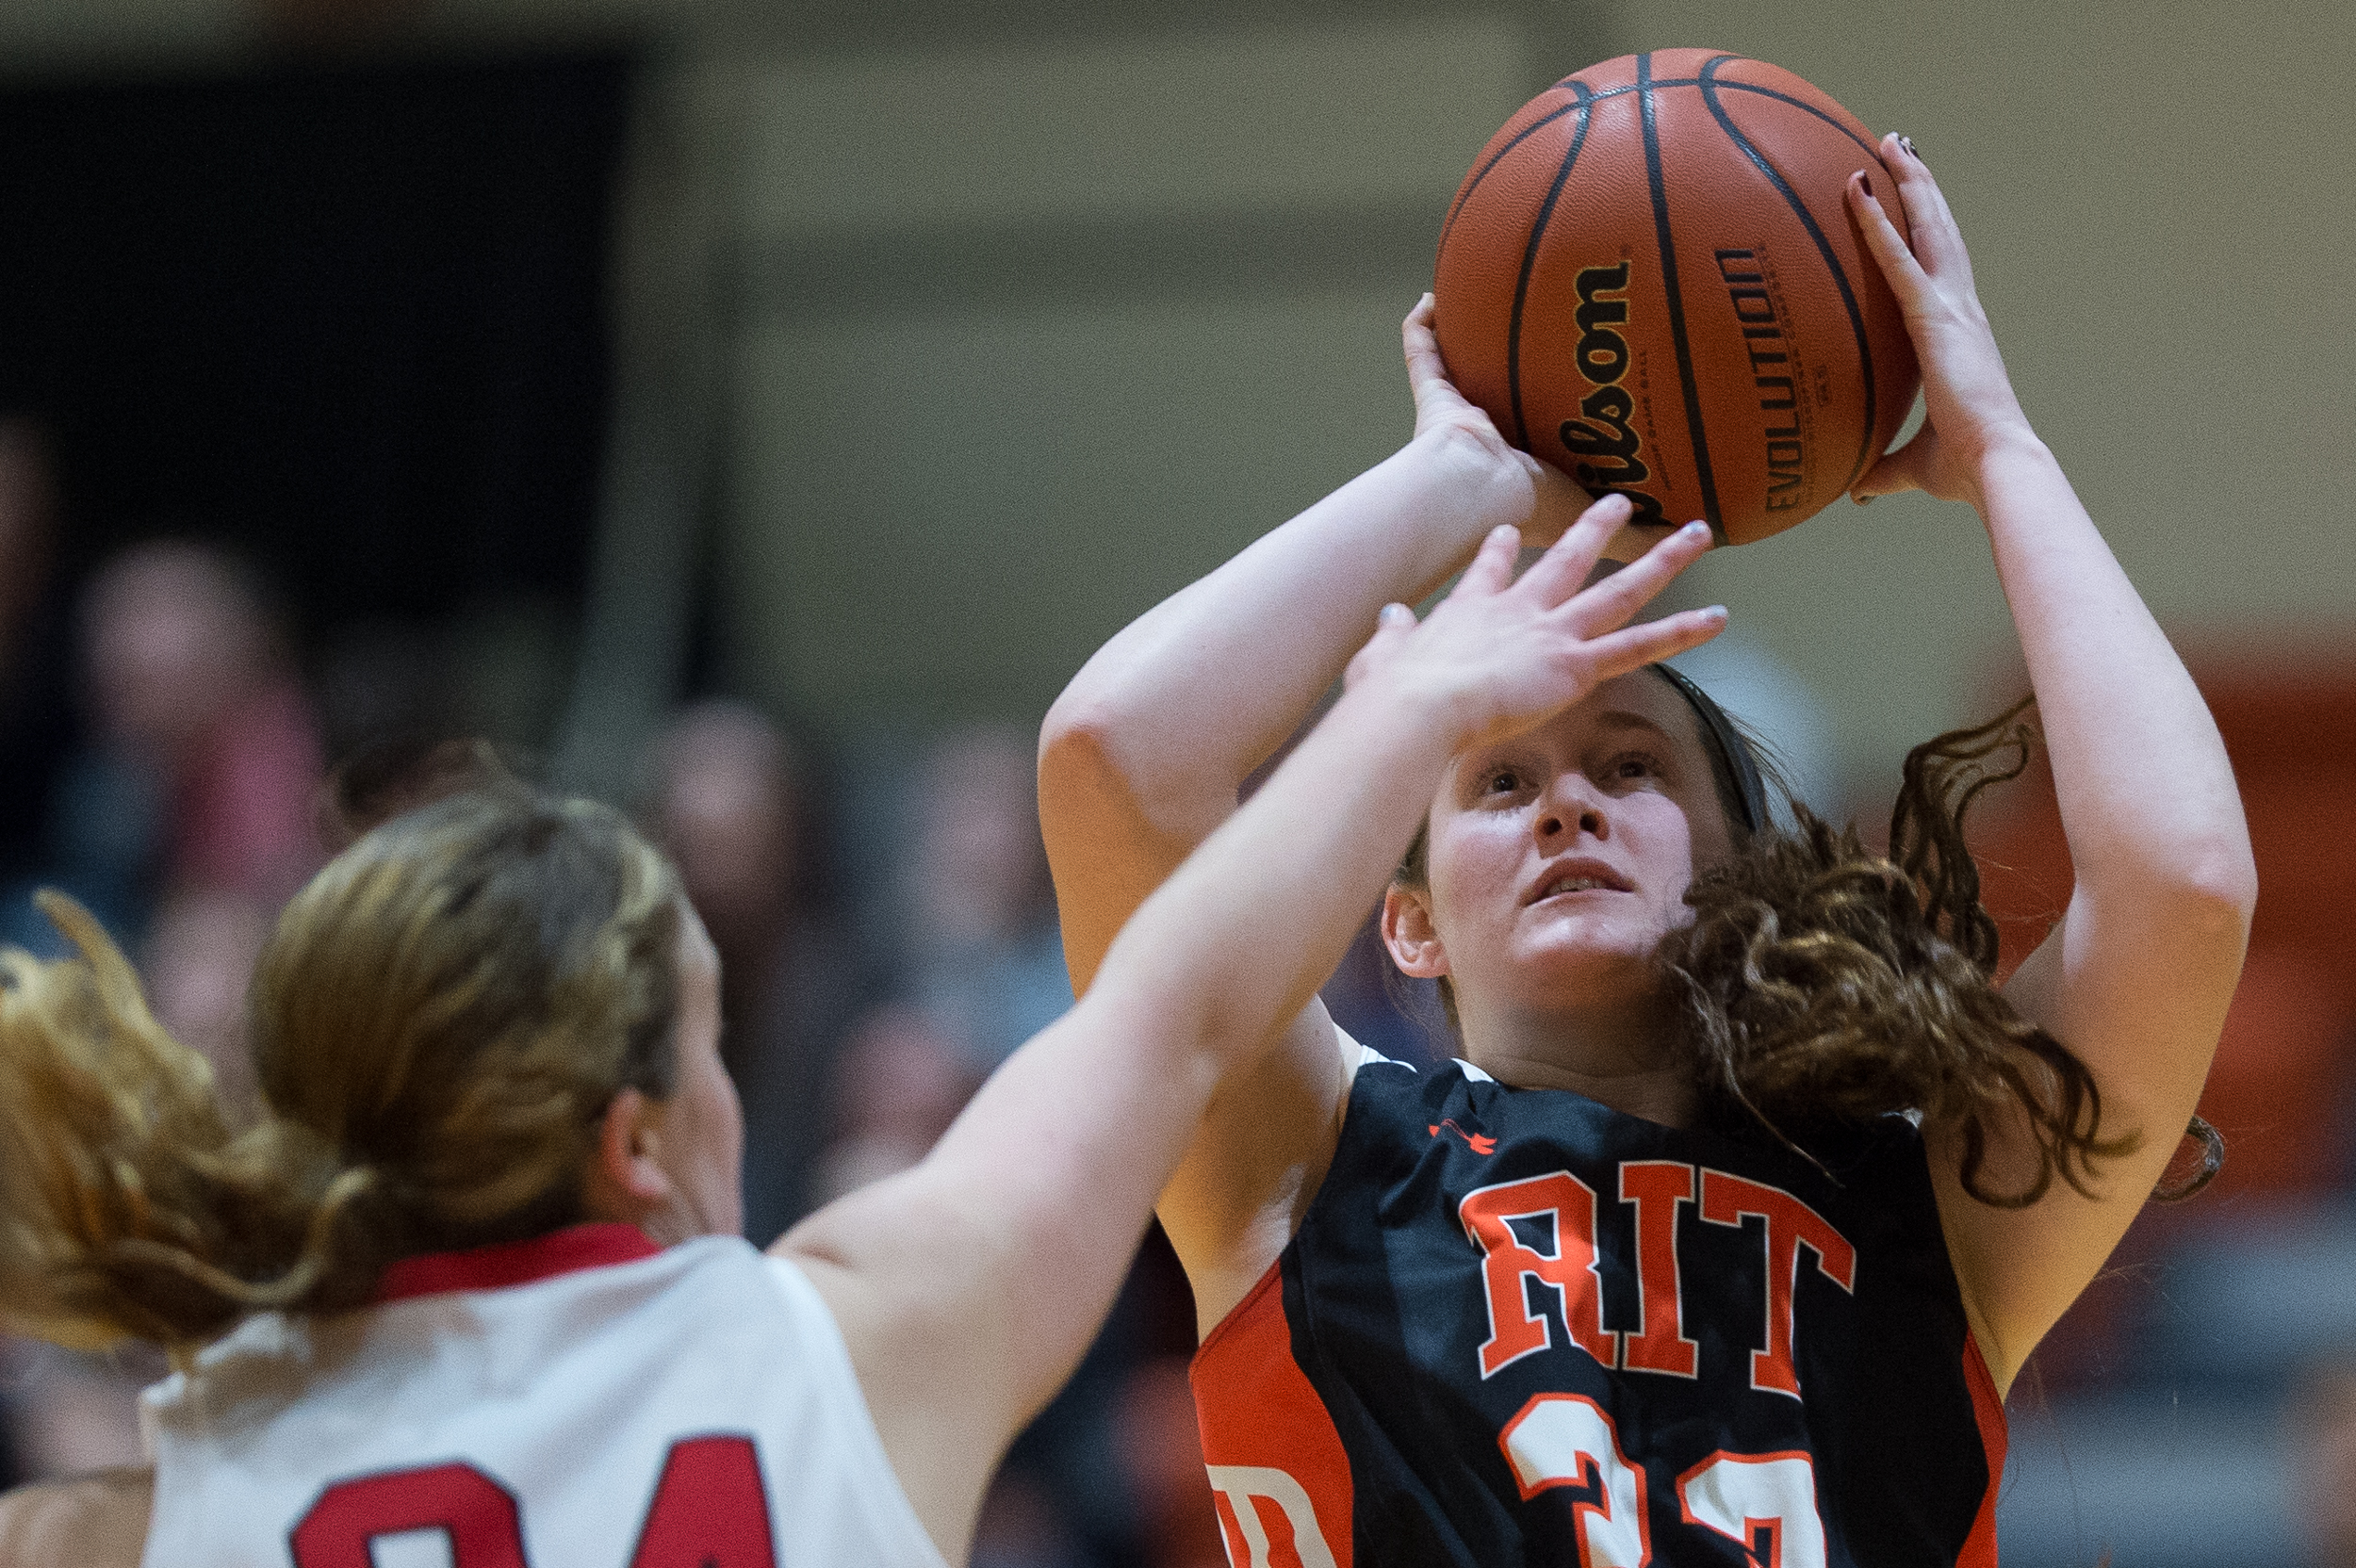 RPI Engineers Ashley Clough, 24, attempts to block the shot of RIT Tigers Amanda Olsen, 33, in the Clark Gym on the Rochester Insitute of Technology campus in Henrietta, N.Y. on Jan. 29, 2016. The Tigers went on to defeat the Engineers 68-64.